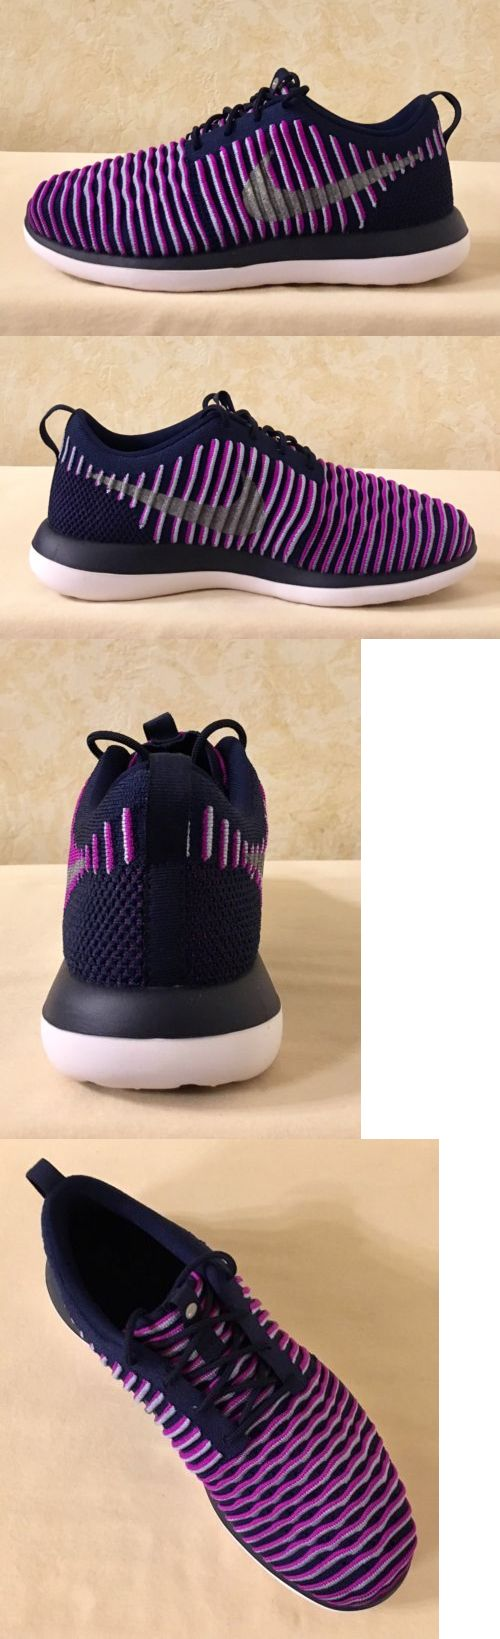 online store c1a7c e28b8 netherlands girls shoes 57974 girls women nike roshe two flyknit gs  athletic shoes purple and silver